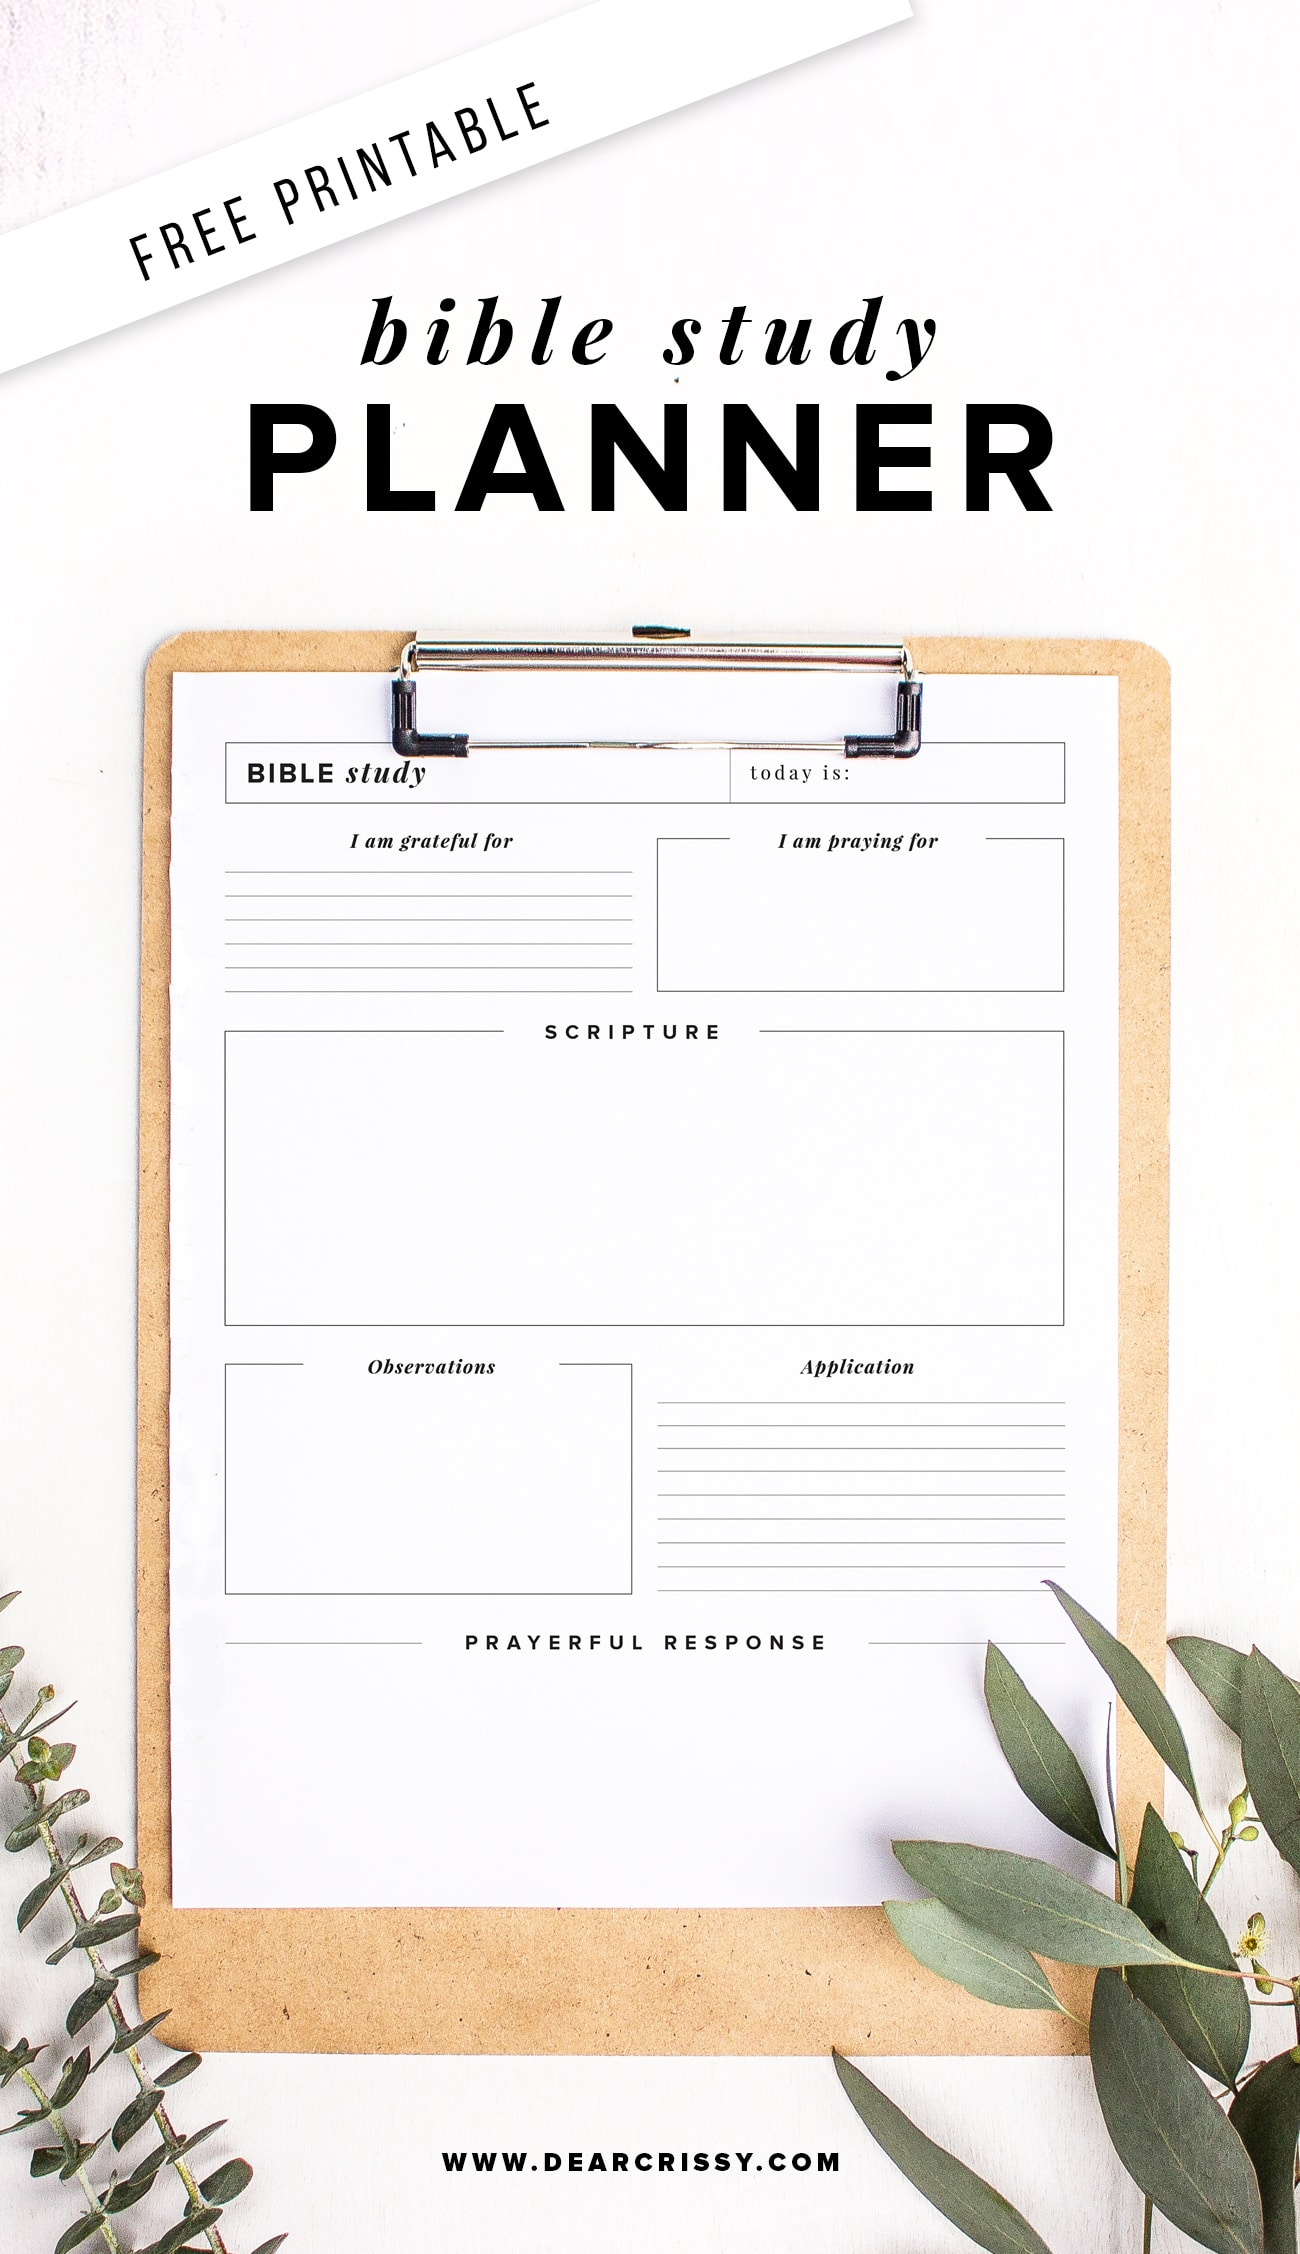 Free Printable Bible Study Planner - Soap Method Bible Study Worksheet! - Free Printable Bible Study Worksheets For Adults